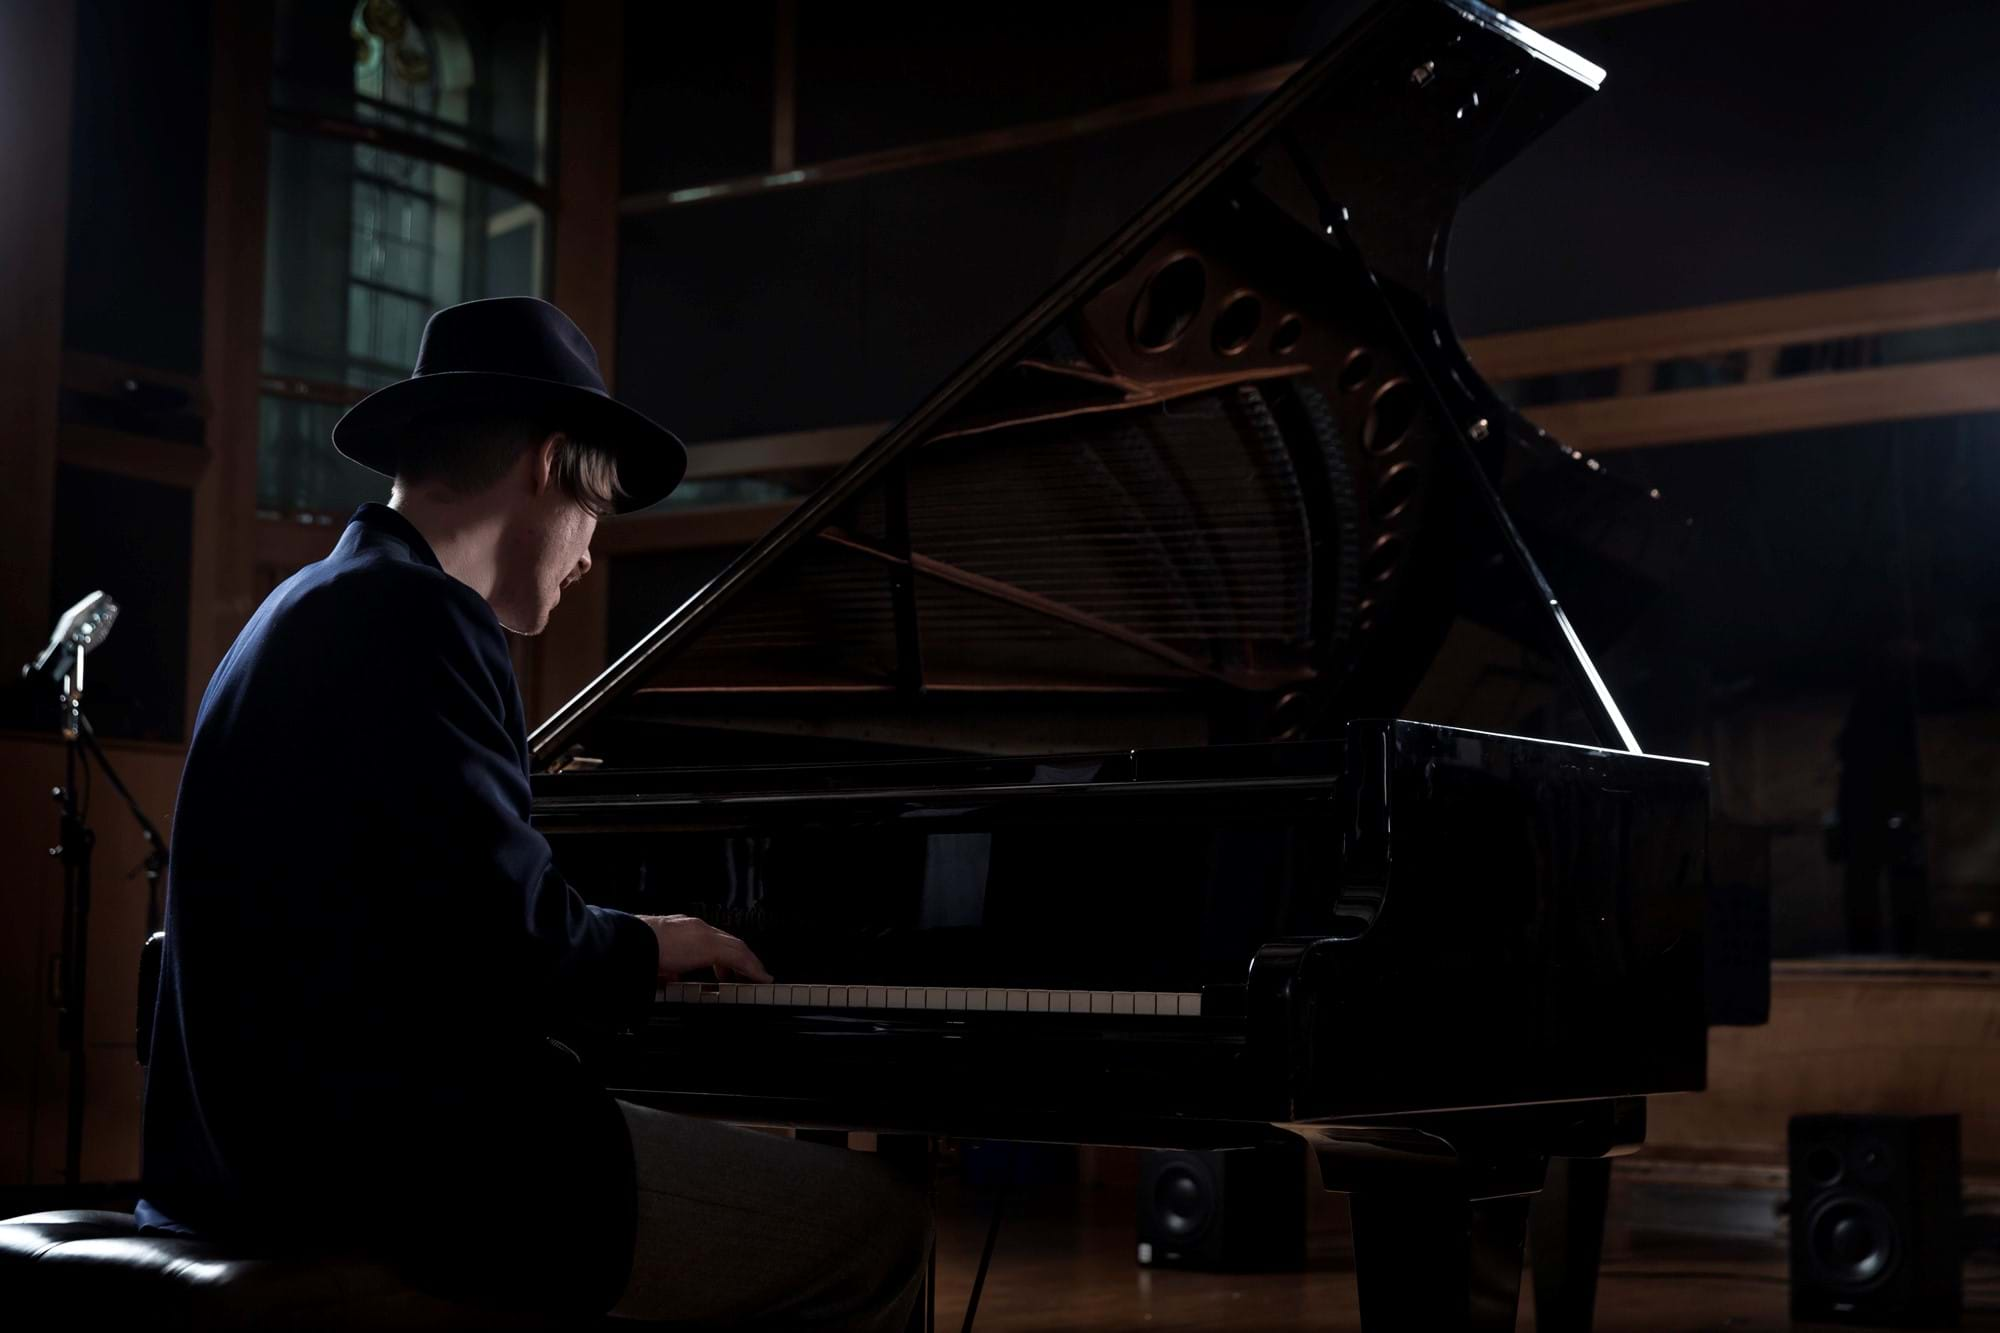 The pianist in the studio